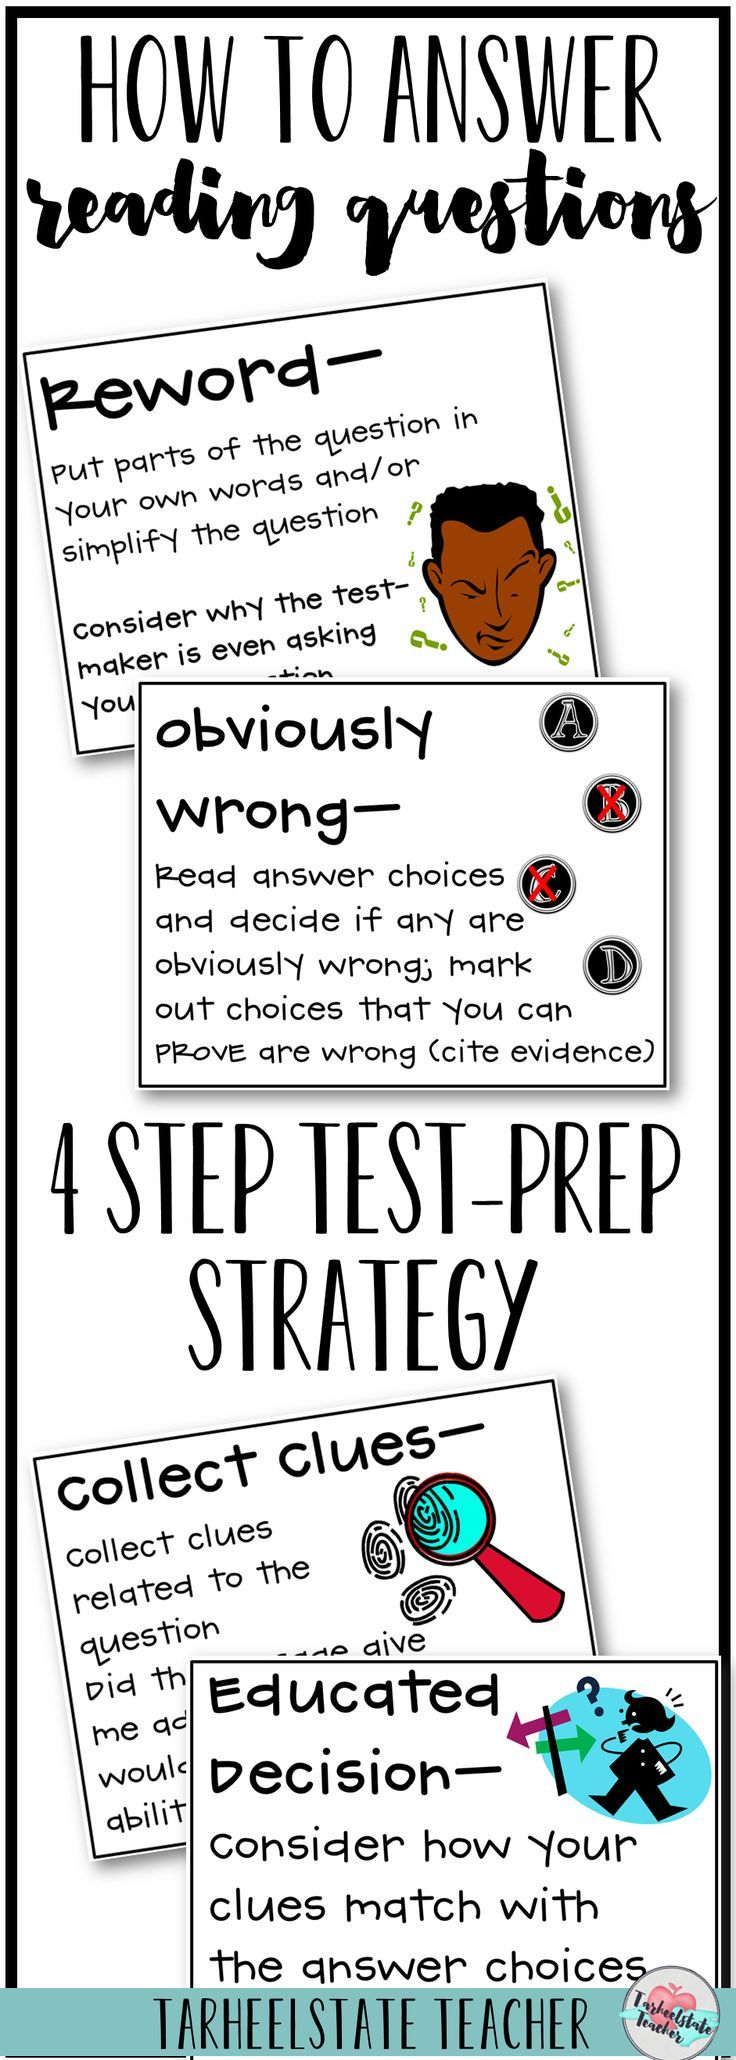 """Teach your students this 4 Step Reading Test Taking Strategy for answering Reading Comprehension questions; The """"Thinking Through Reading Tests"""" resource also includes reading test prep strategies and a test talk minilesson structure for helping your students understand the design of their standardized reading tests. You'll want to include this unit into your reading test review plans."""